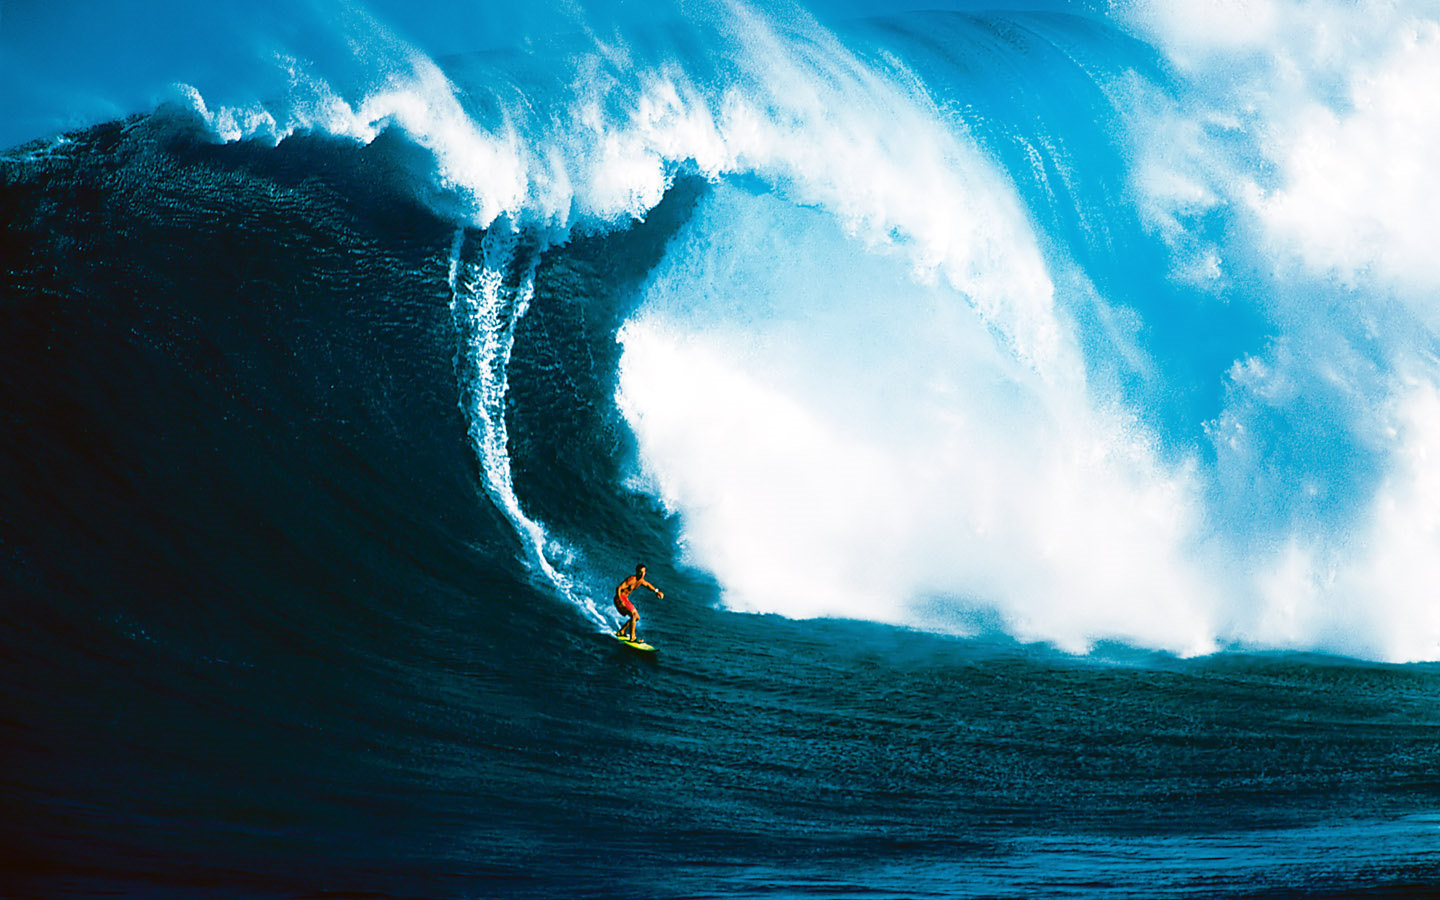 Surfing Wave Wallpapers, Surf Wallpapers